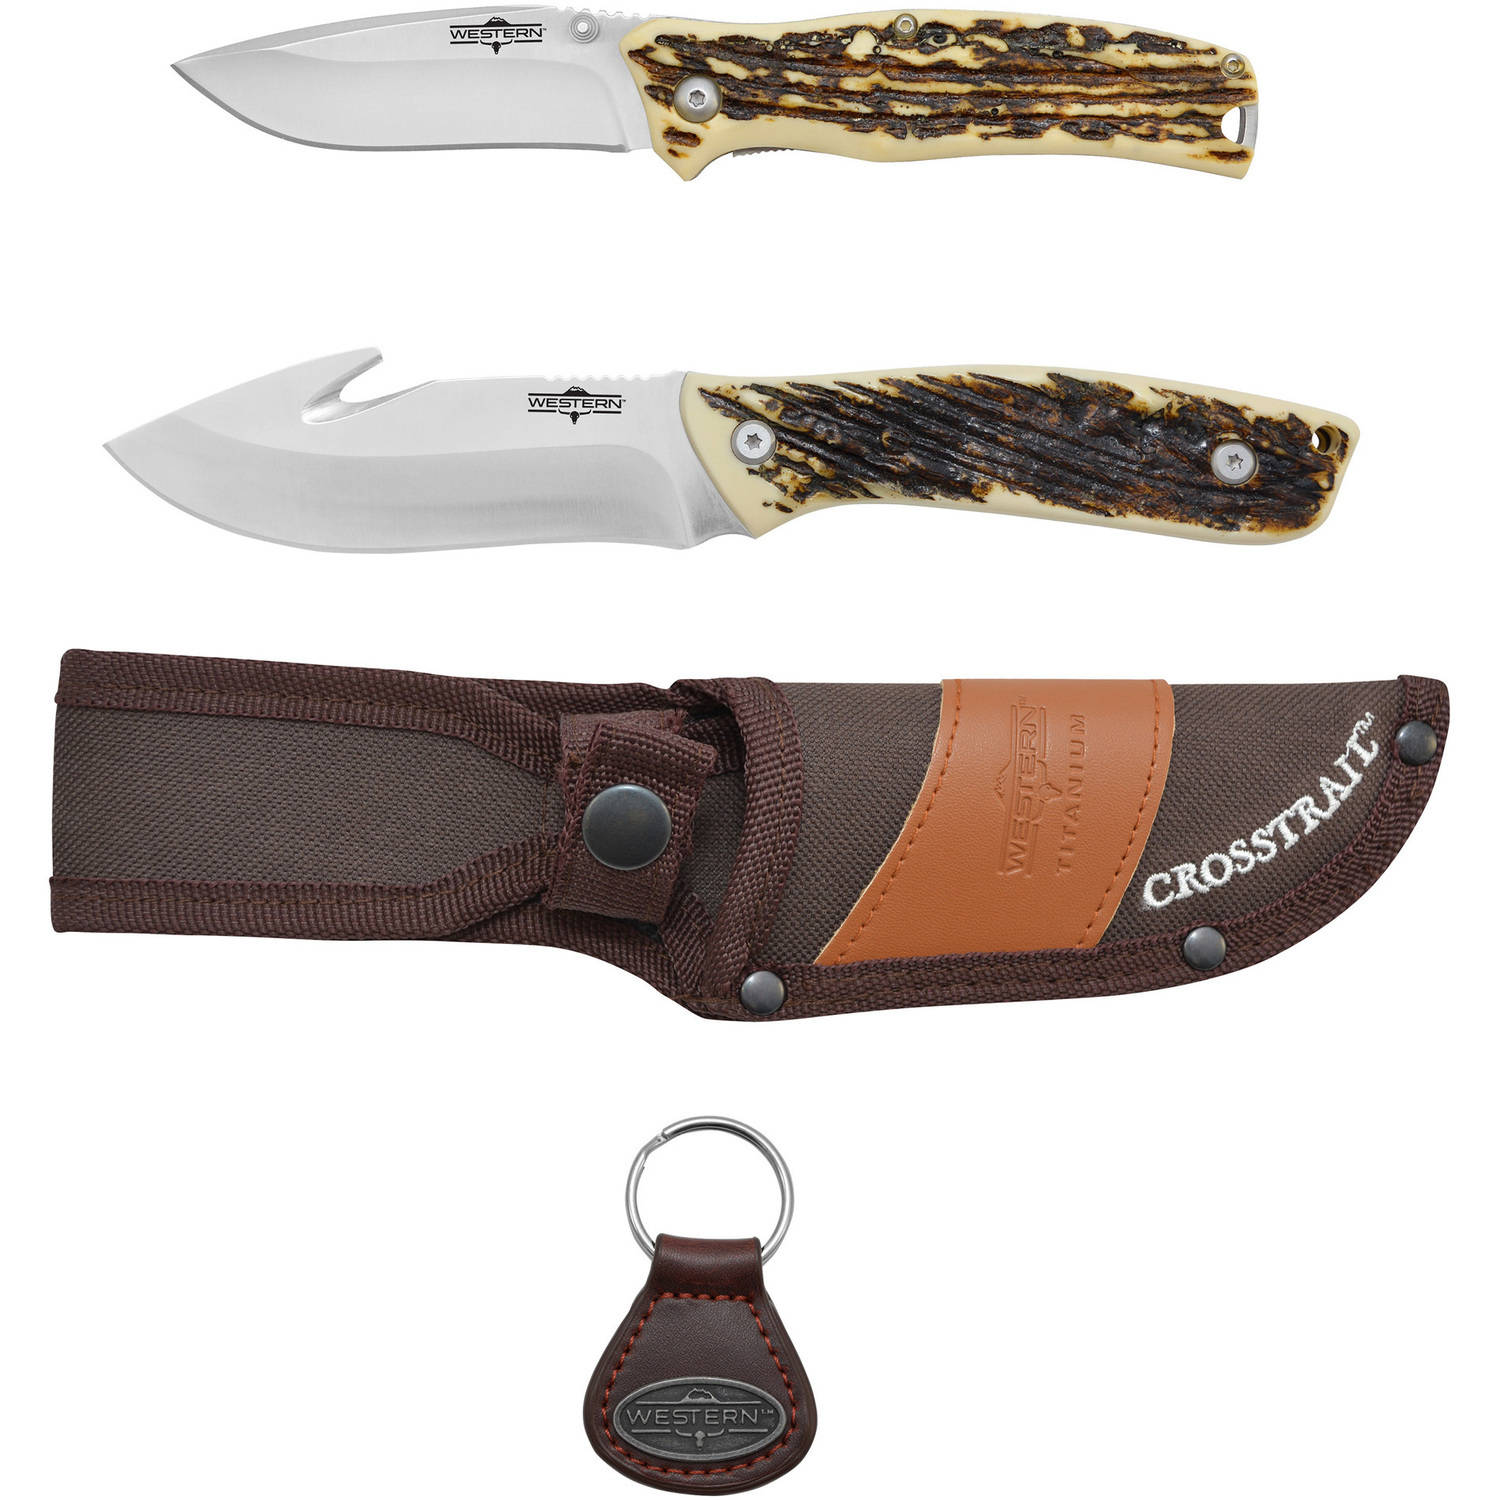 Camillus Western Crosstrail 8.25-inch Fixed Blade Knife, Pronto 7-inch Folding Knife and Keychain by Acme United